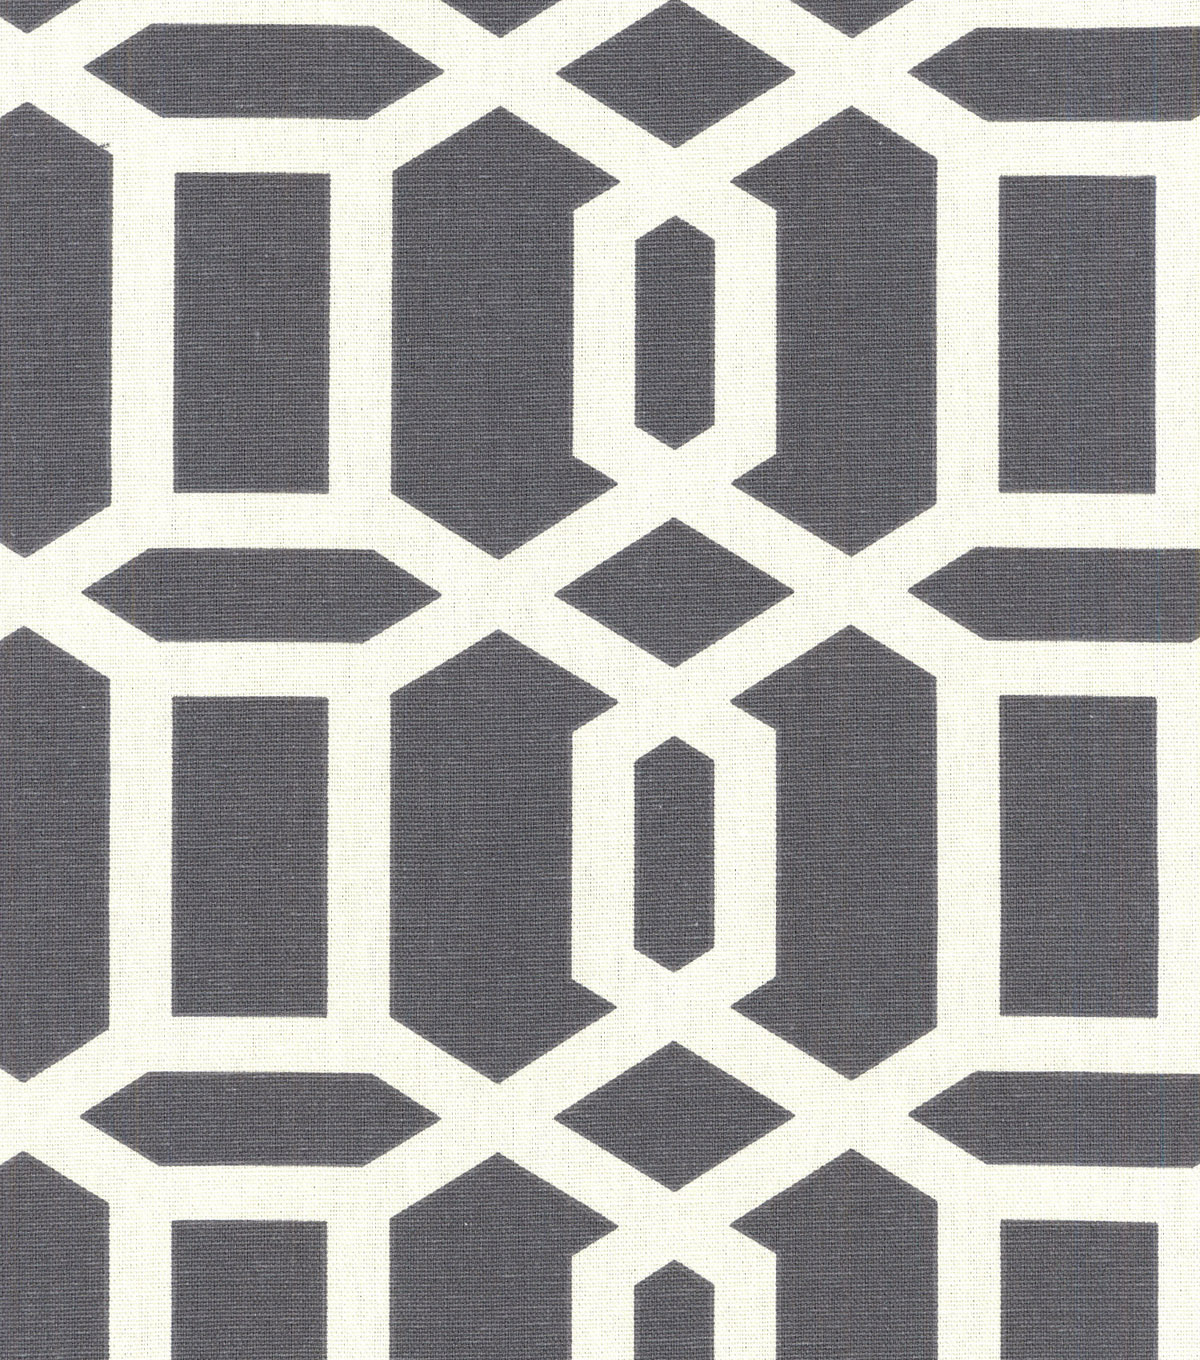 Swavelle Millcreek Multi-Purpose Decor Fabric 54\u0022-Bondi Paramount Titanium